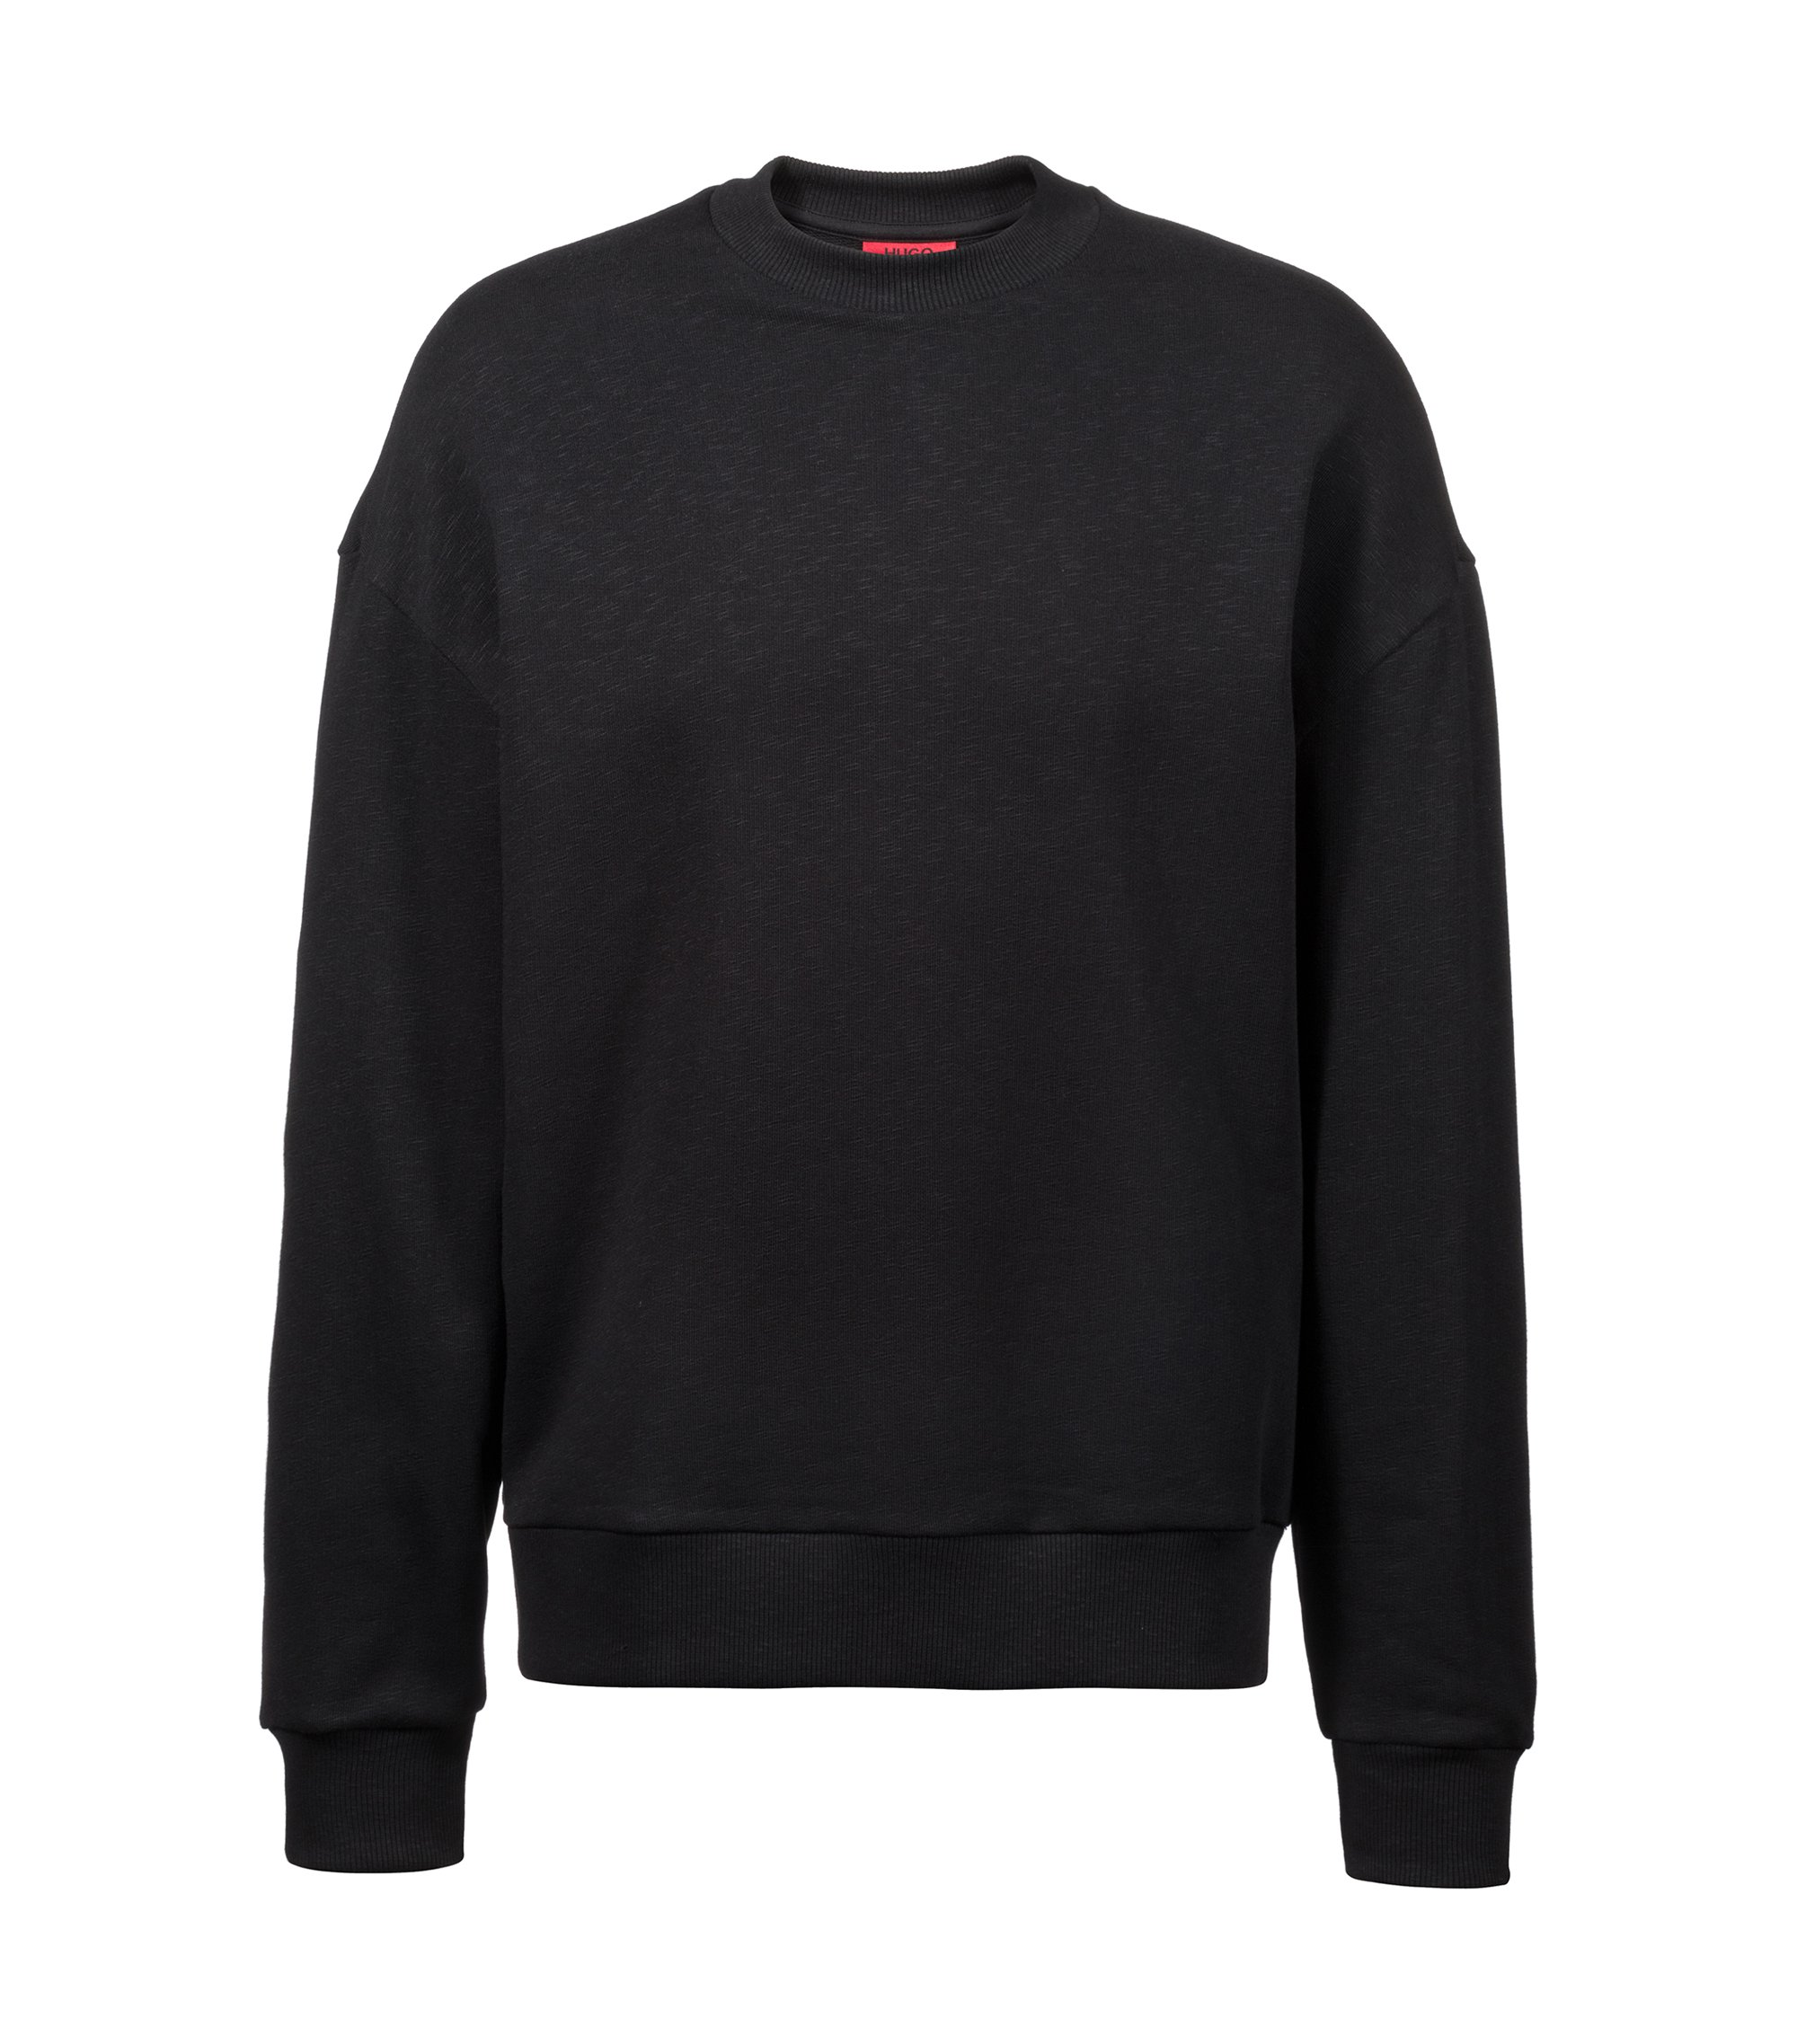 Unisex oversized-fit sweatshirt in slub French terry, Black